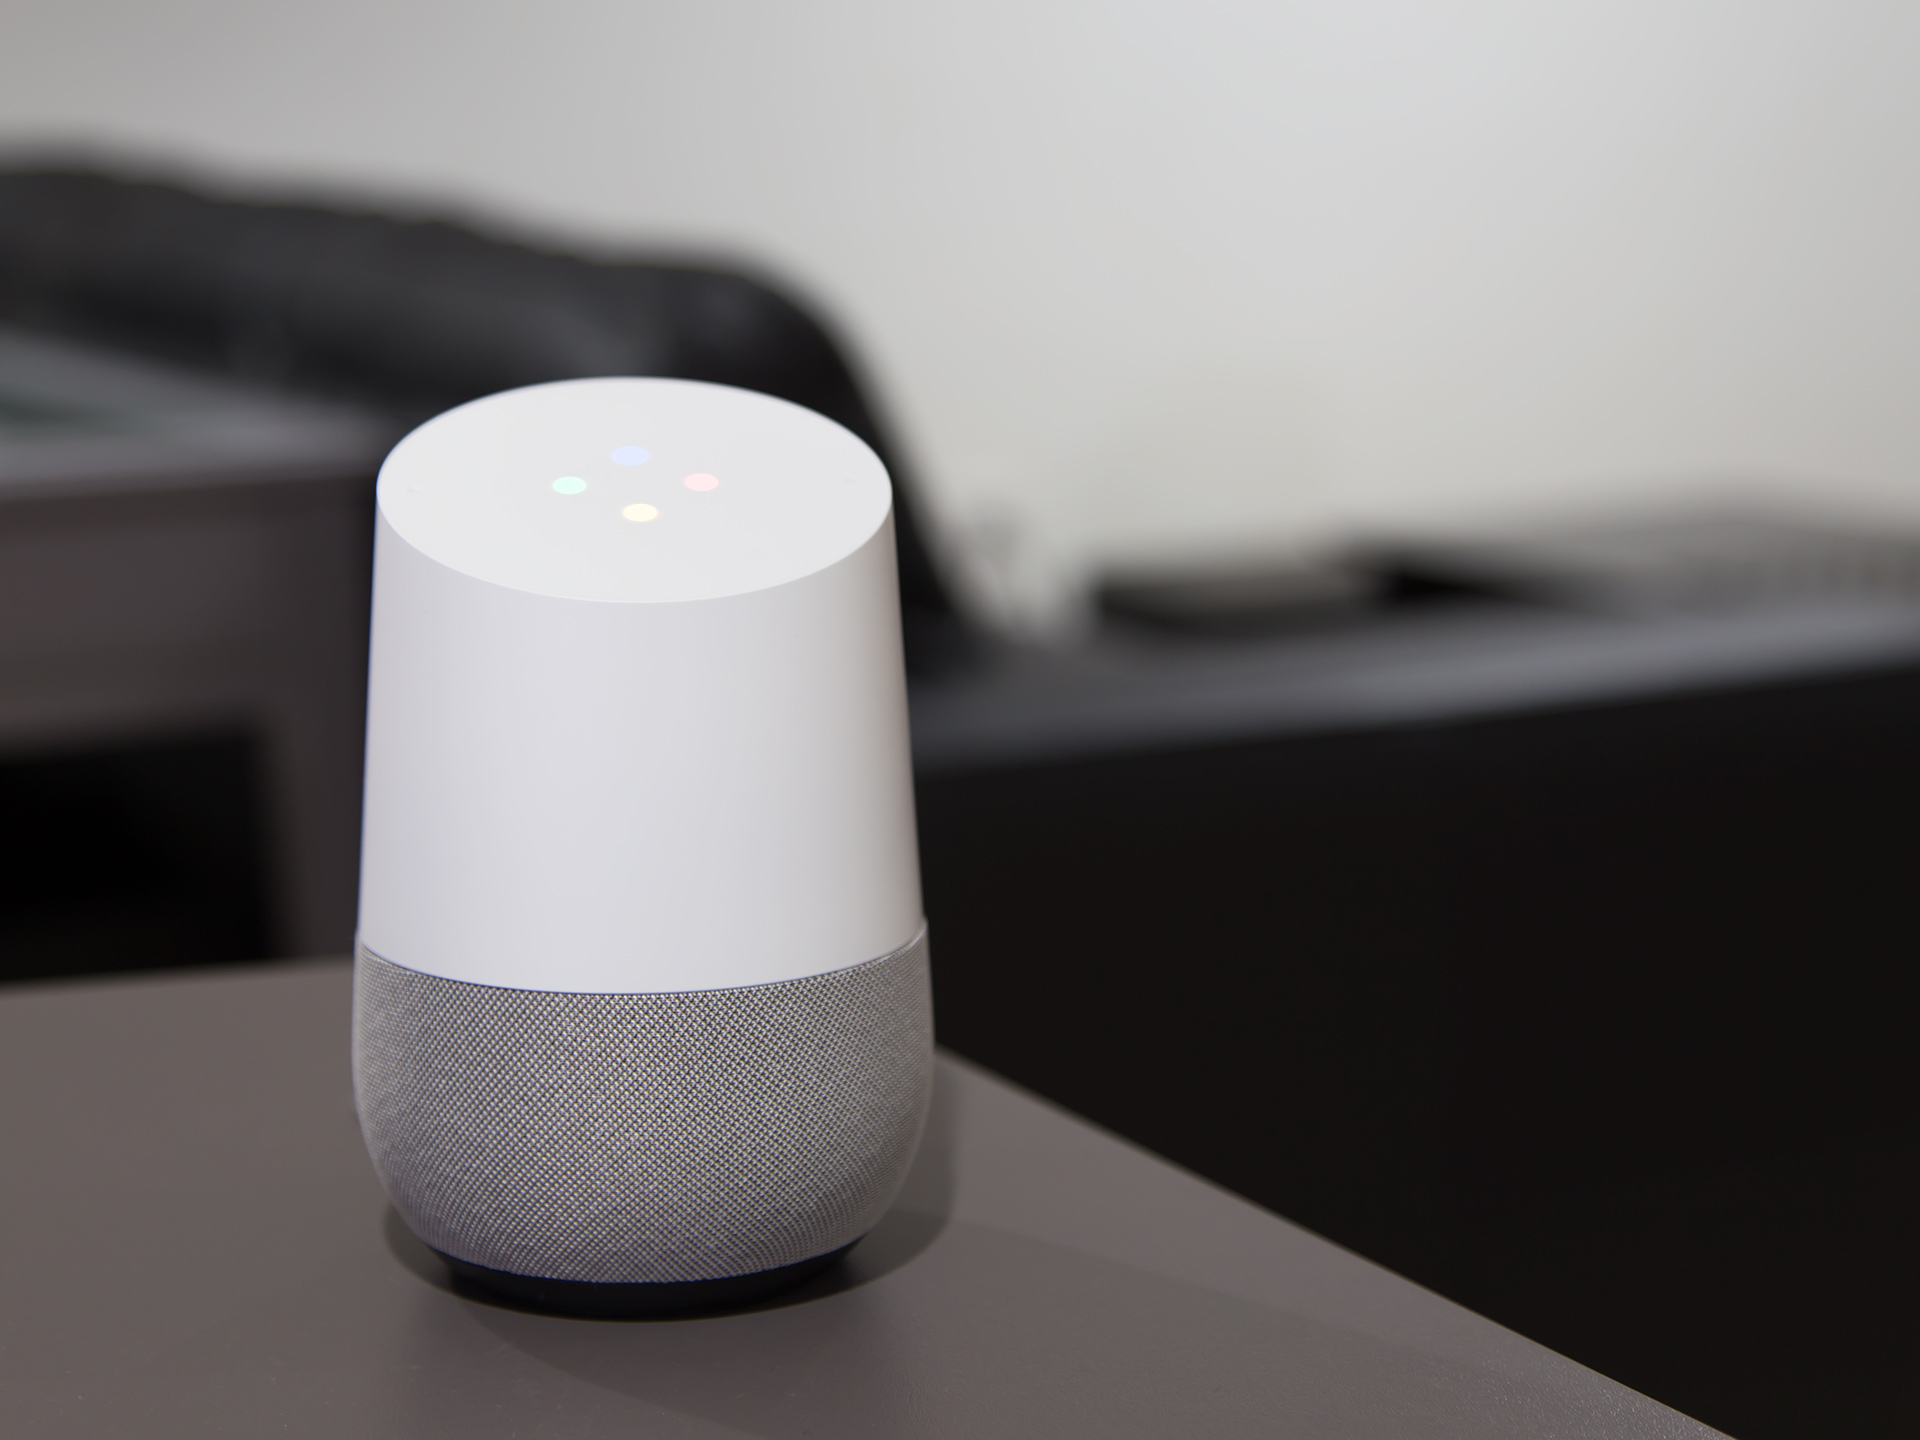 Google Home gets free phone calls in the US and Canada | Ars Technica